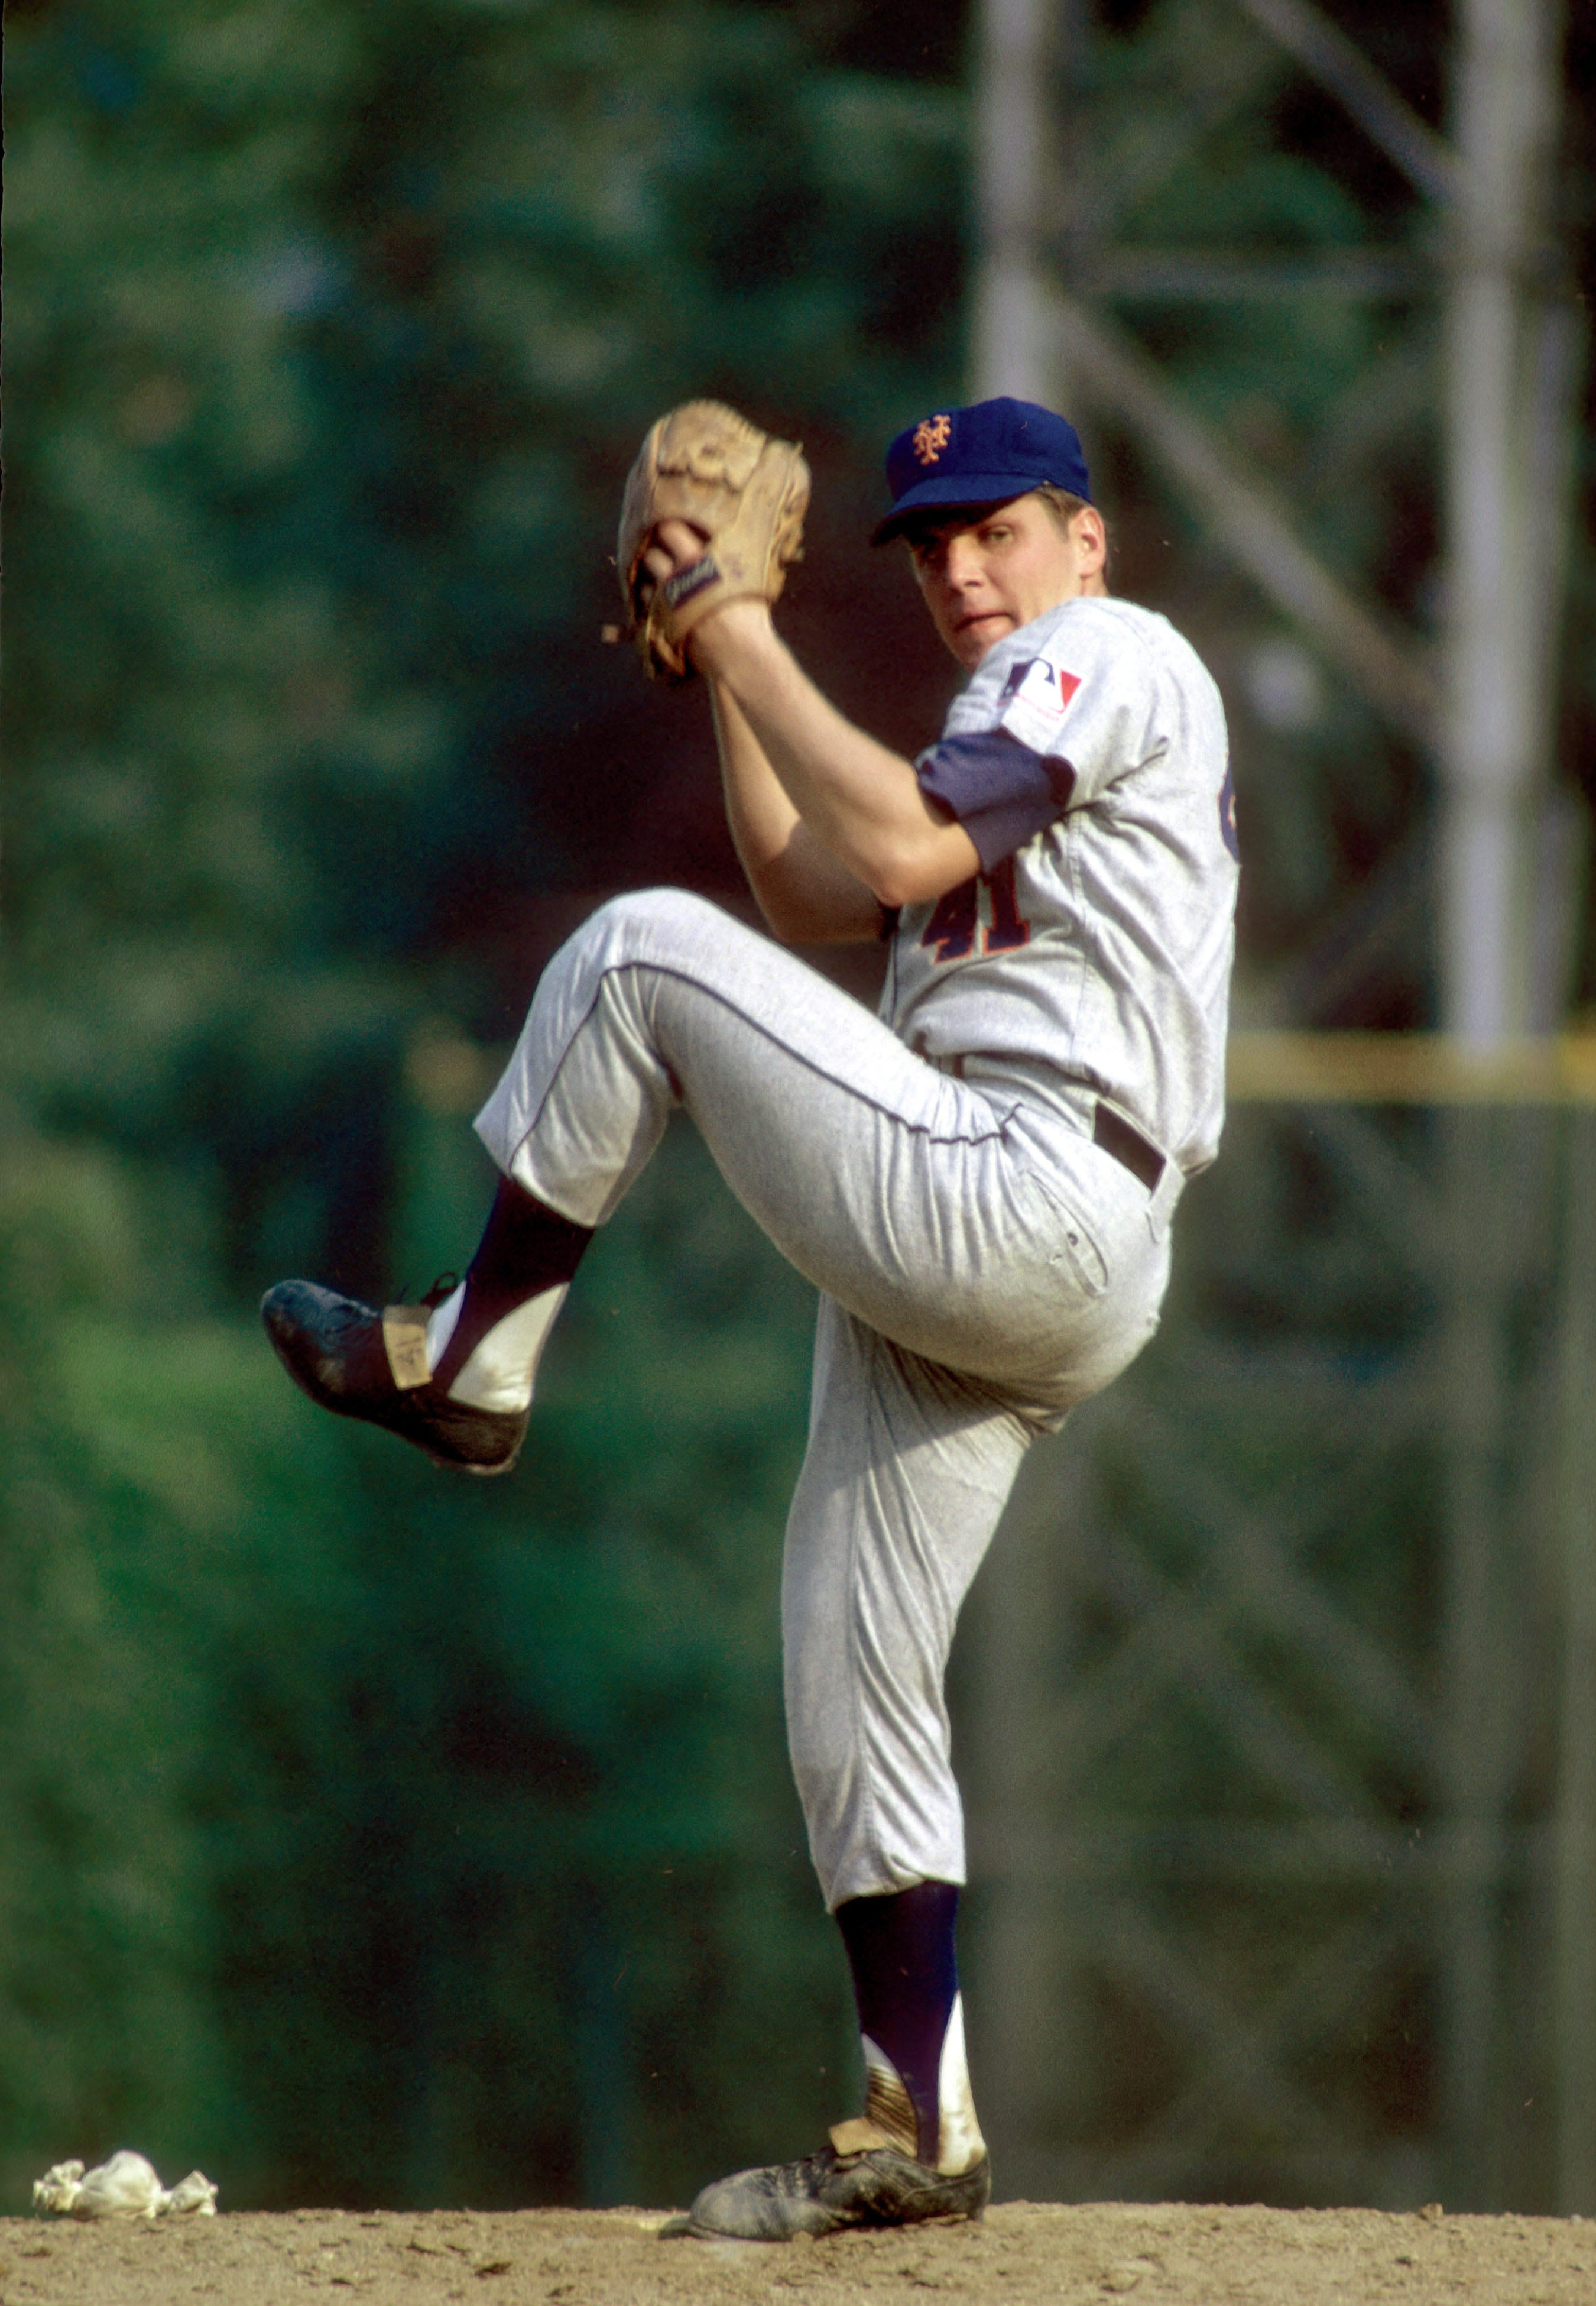 New York Mets pitcher Tom Seaver will retire from public life, according to his family.